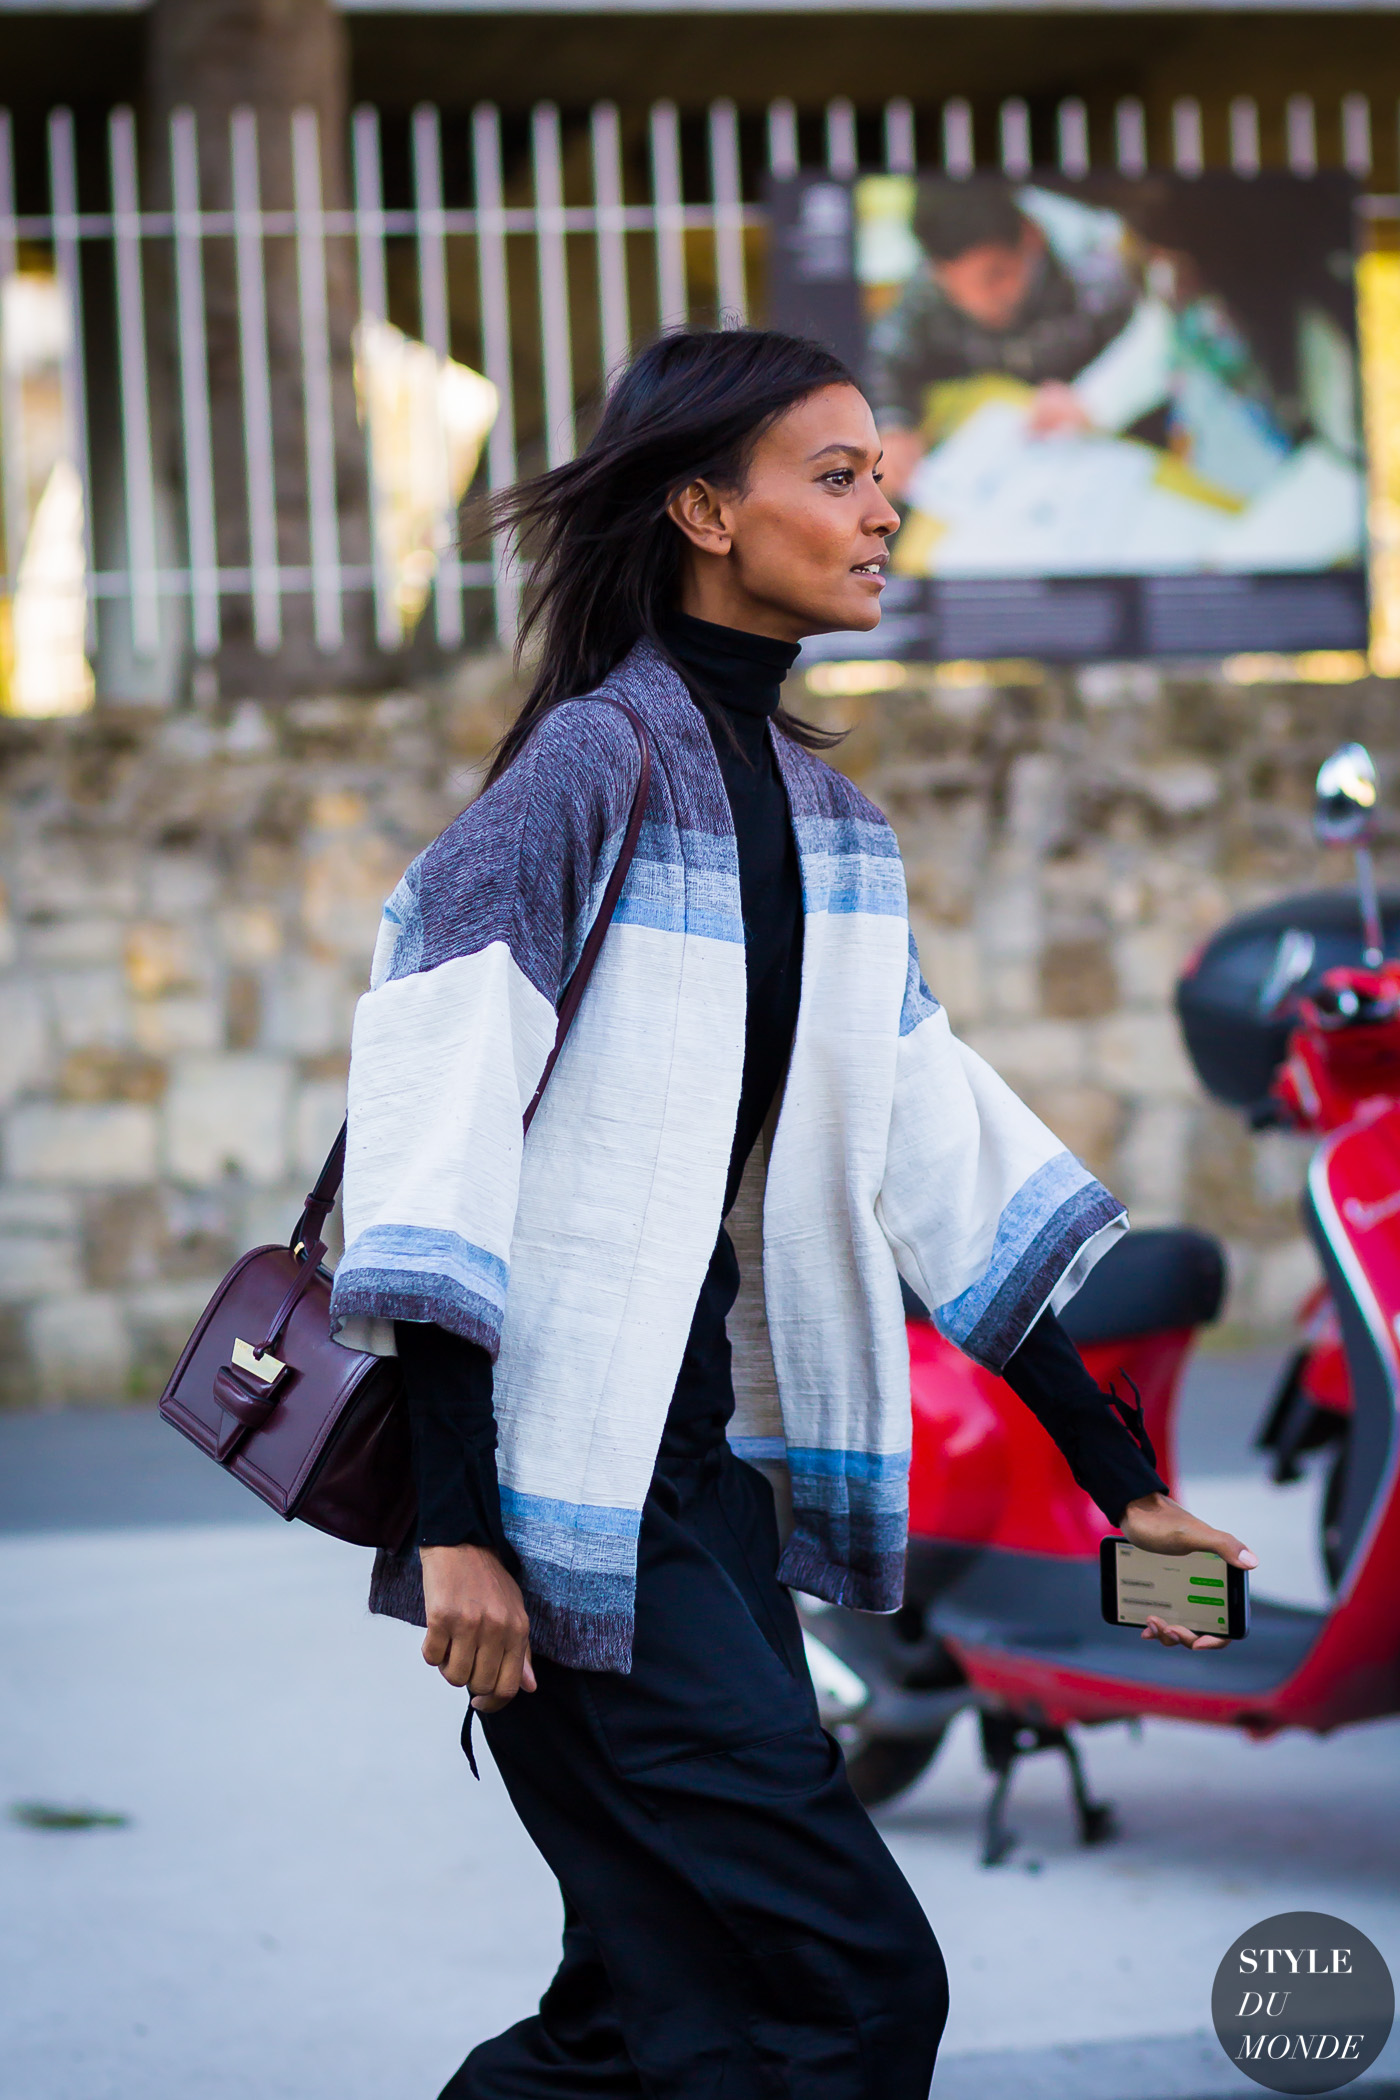 Liya Kebede Street Style Street Fashion Streetsnaps by STYLEDUMONDE Street Style Fashion Photography